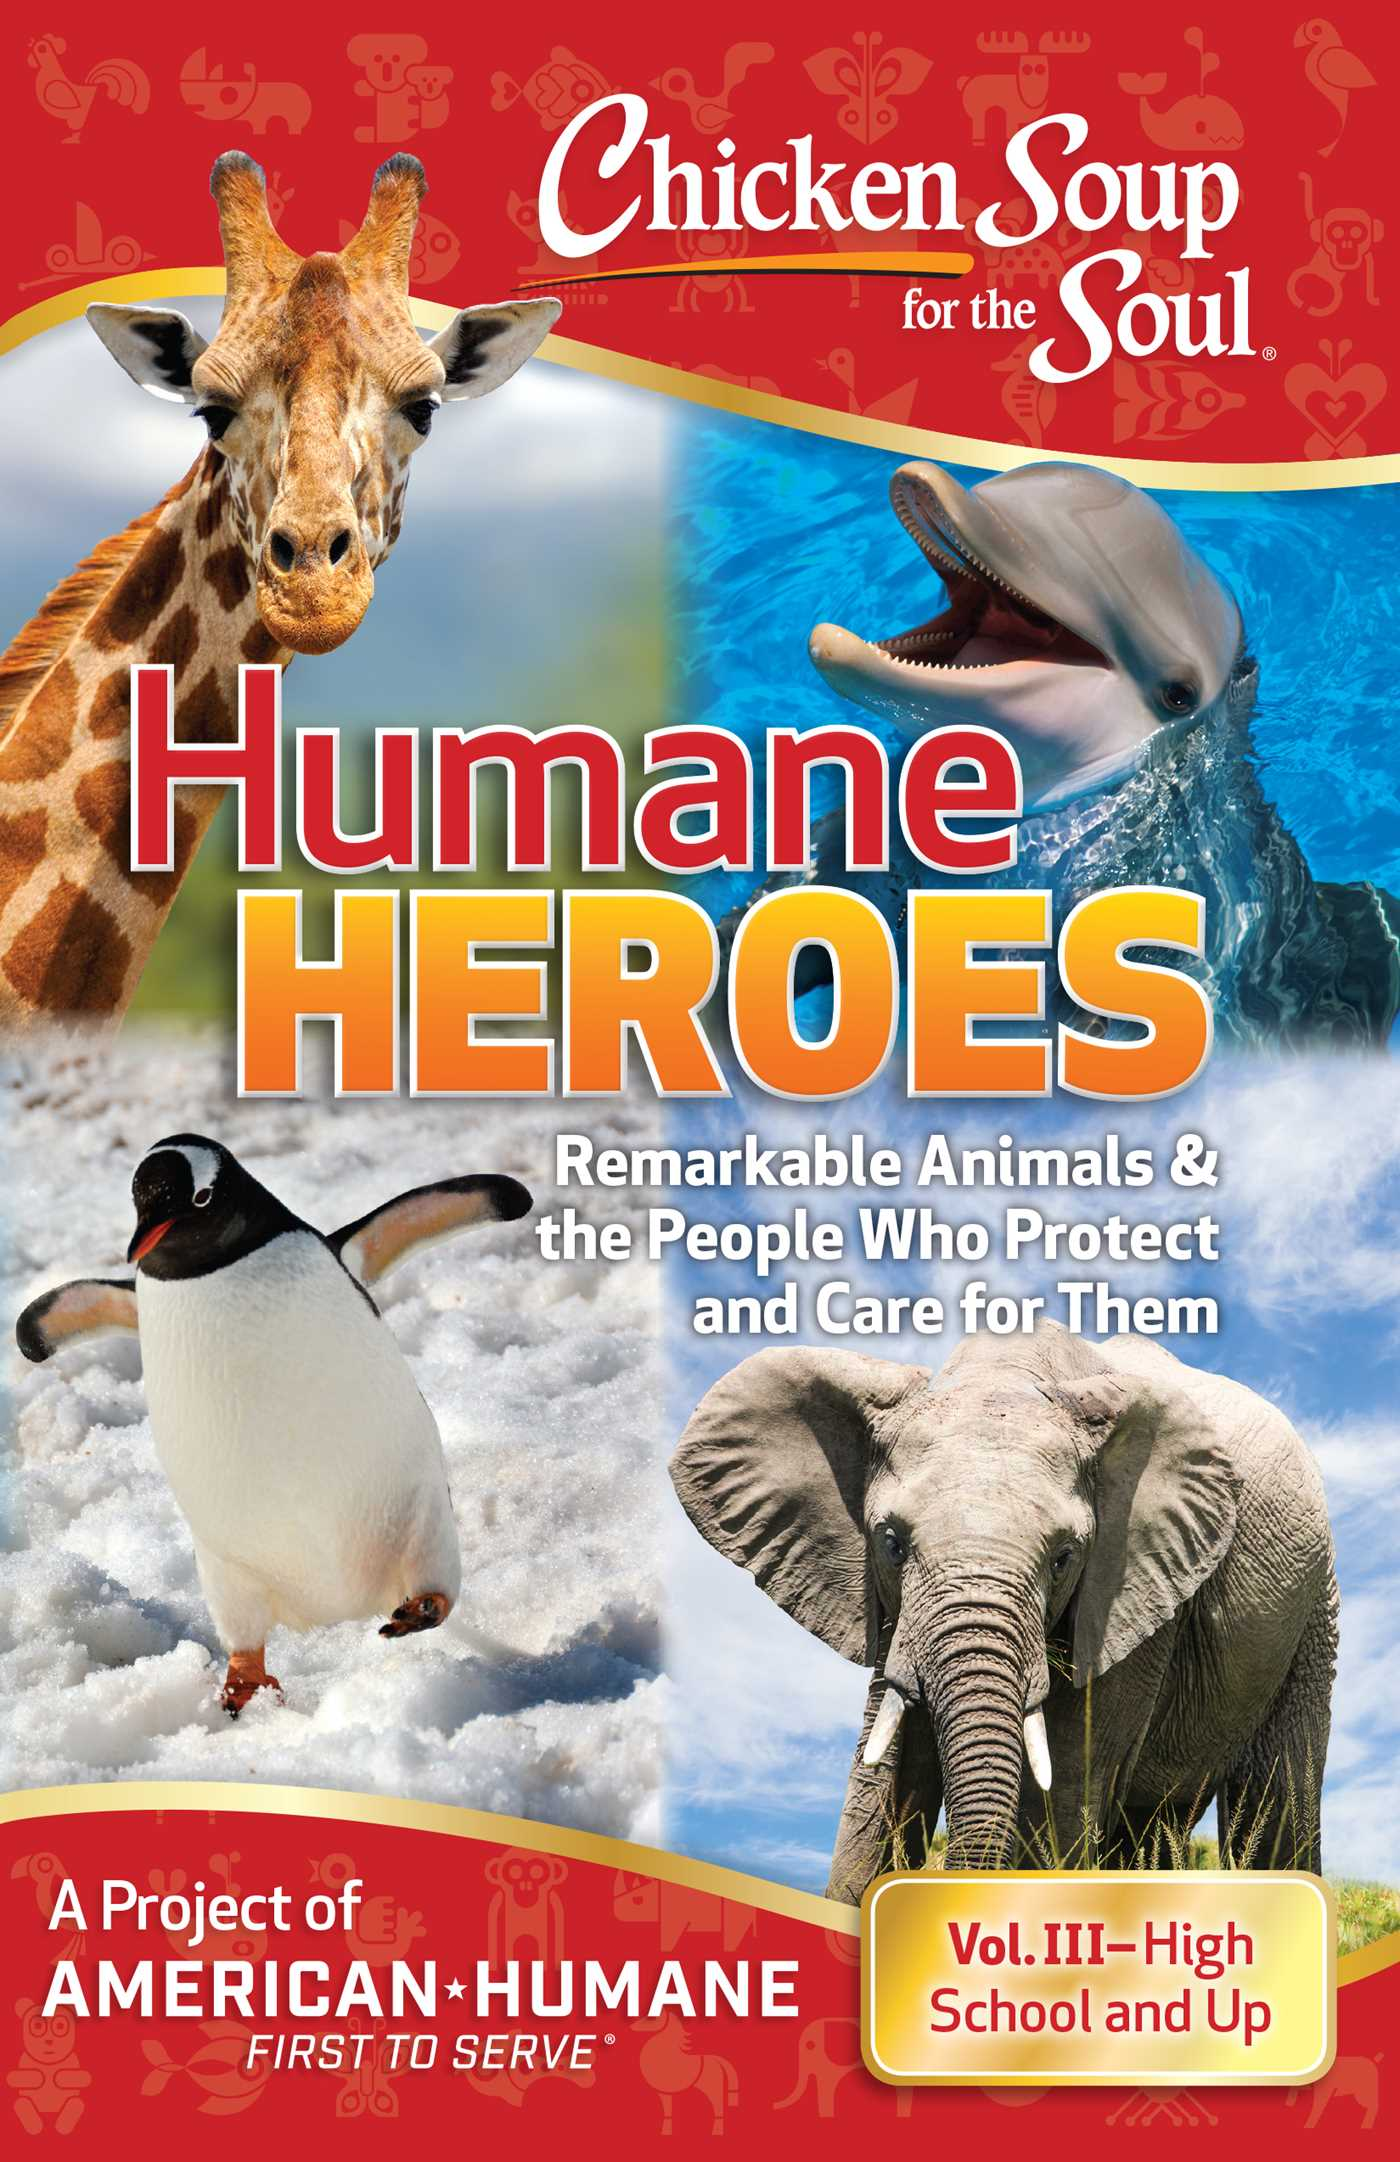 Chicken soup for the soul humane heroes volume iii 9780998842783 hr